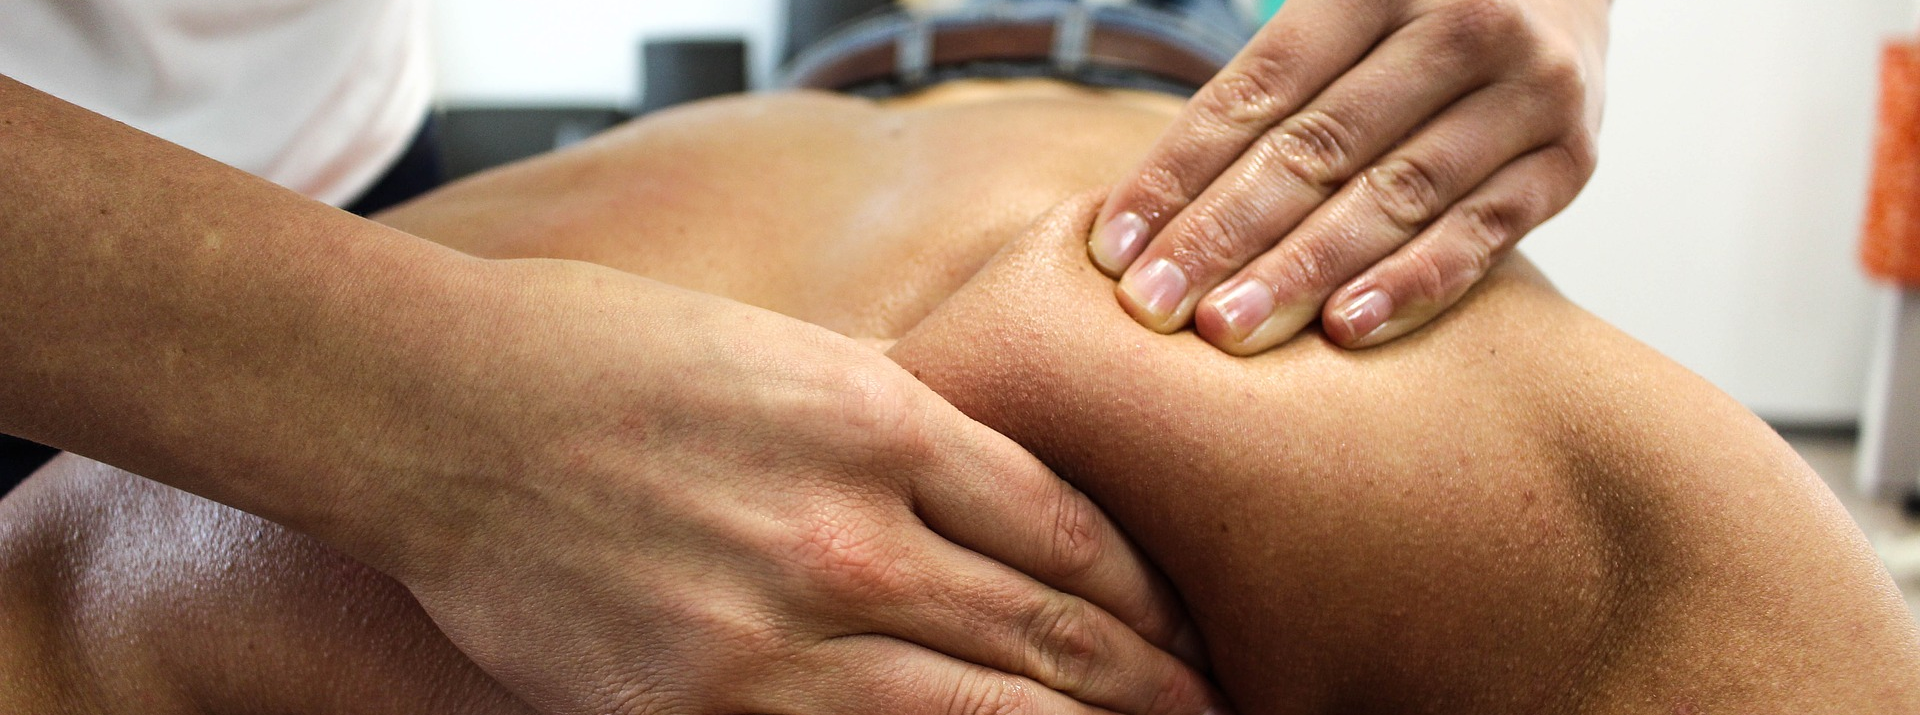 We help resolve your chronic pain.